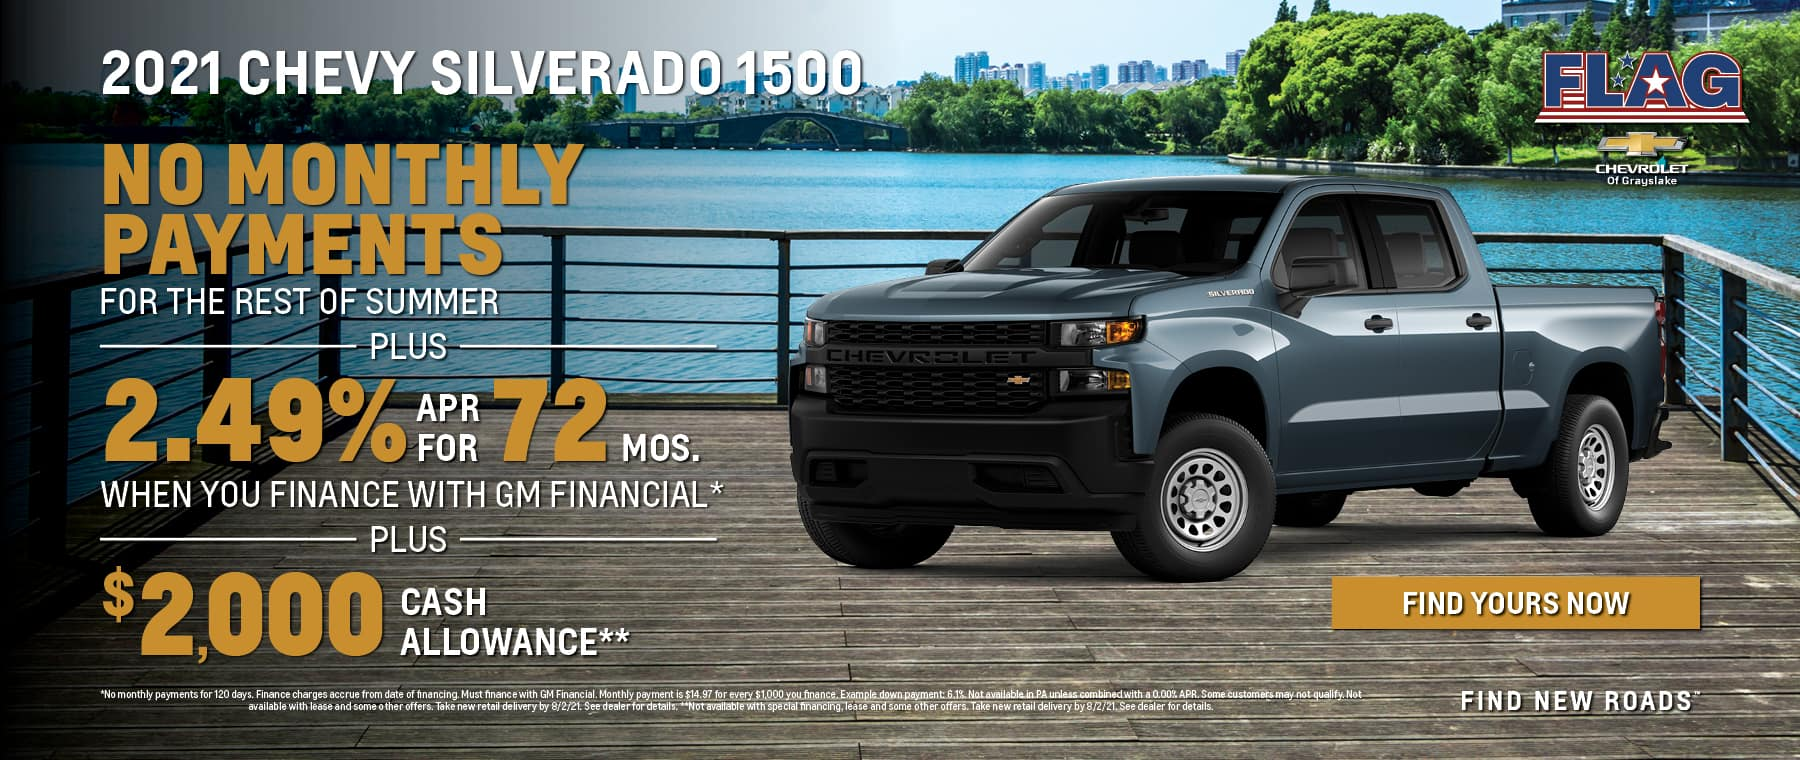 No monthly payments the rest of sumer plus 2.49% APR for 72 months plus $2,000 Cash Allowance